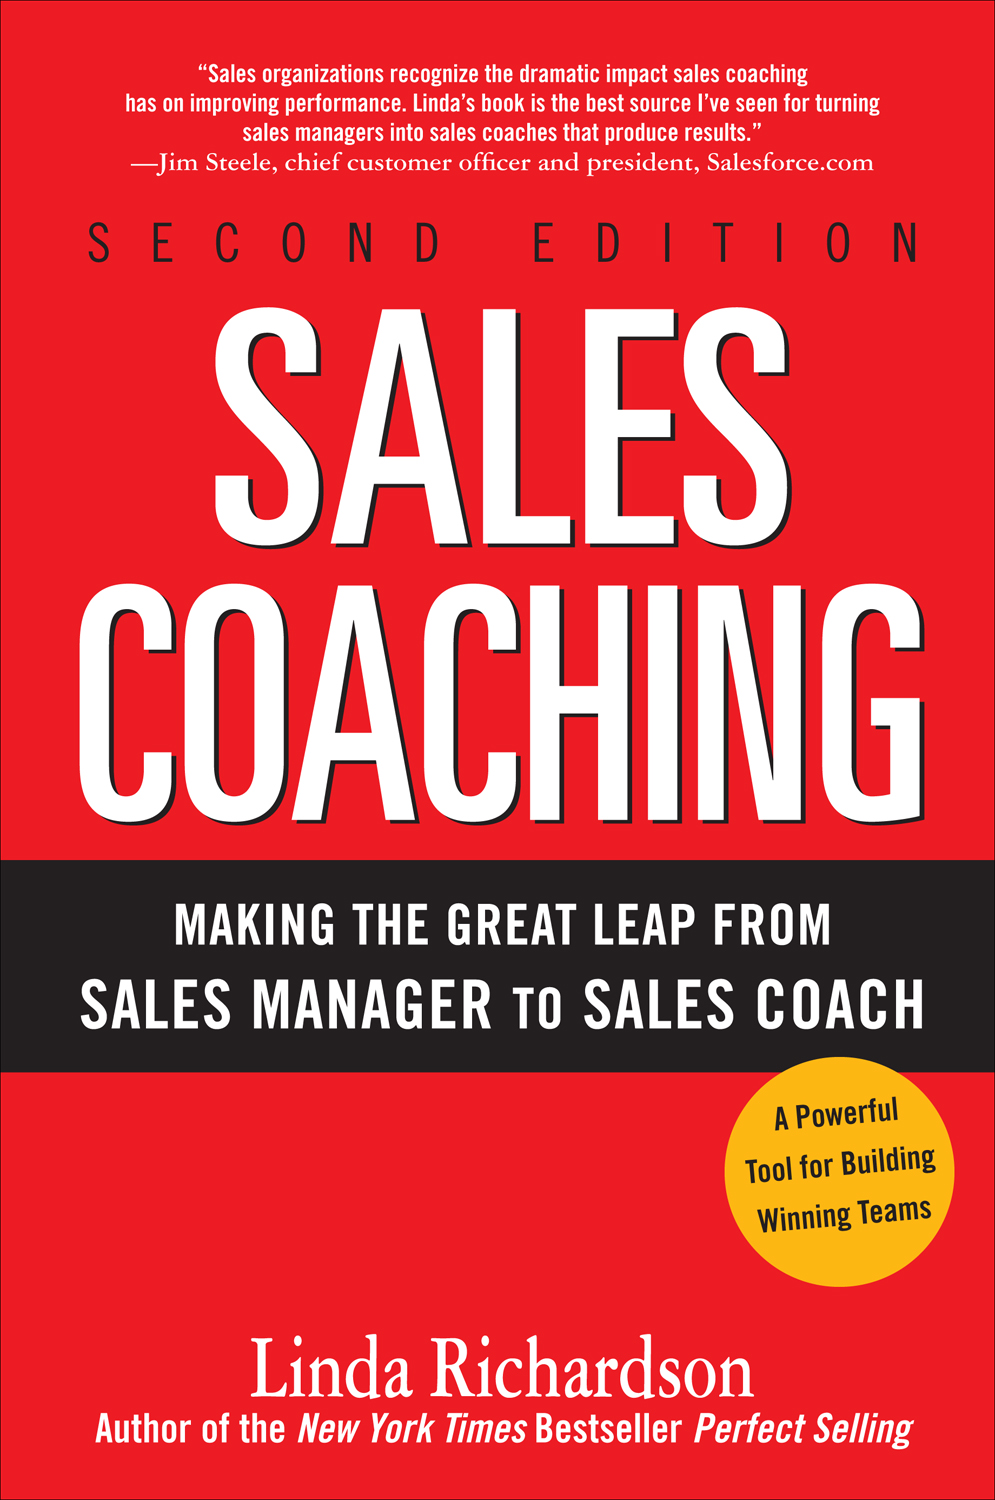 Download Ebook Sales Coaching: Making the Great Leap from Sales Manager to Sales Coach (2nd ed.) by Linda Richardson Pdf